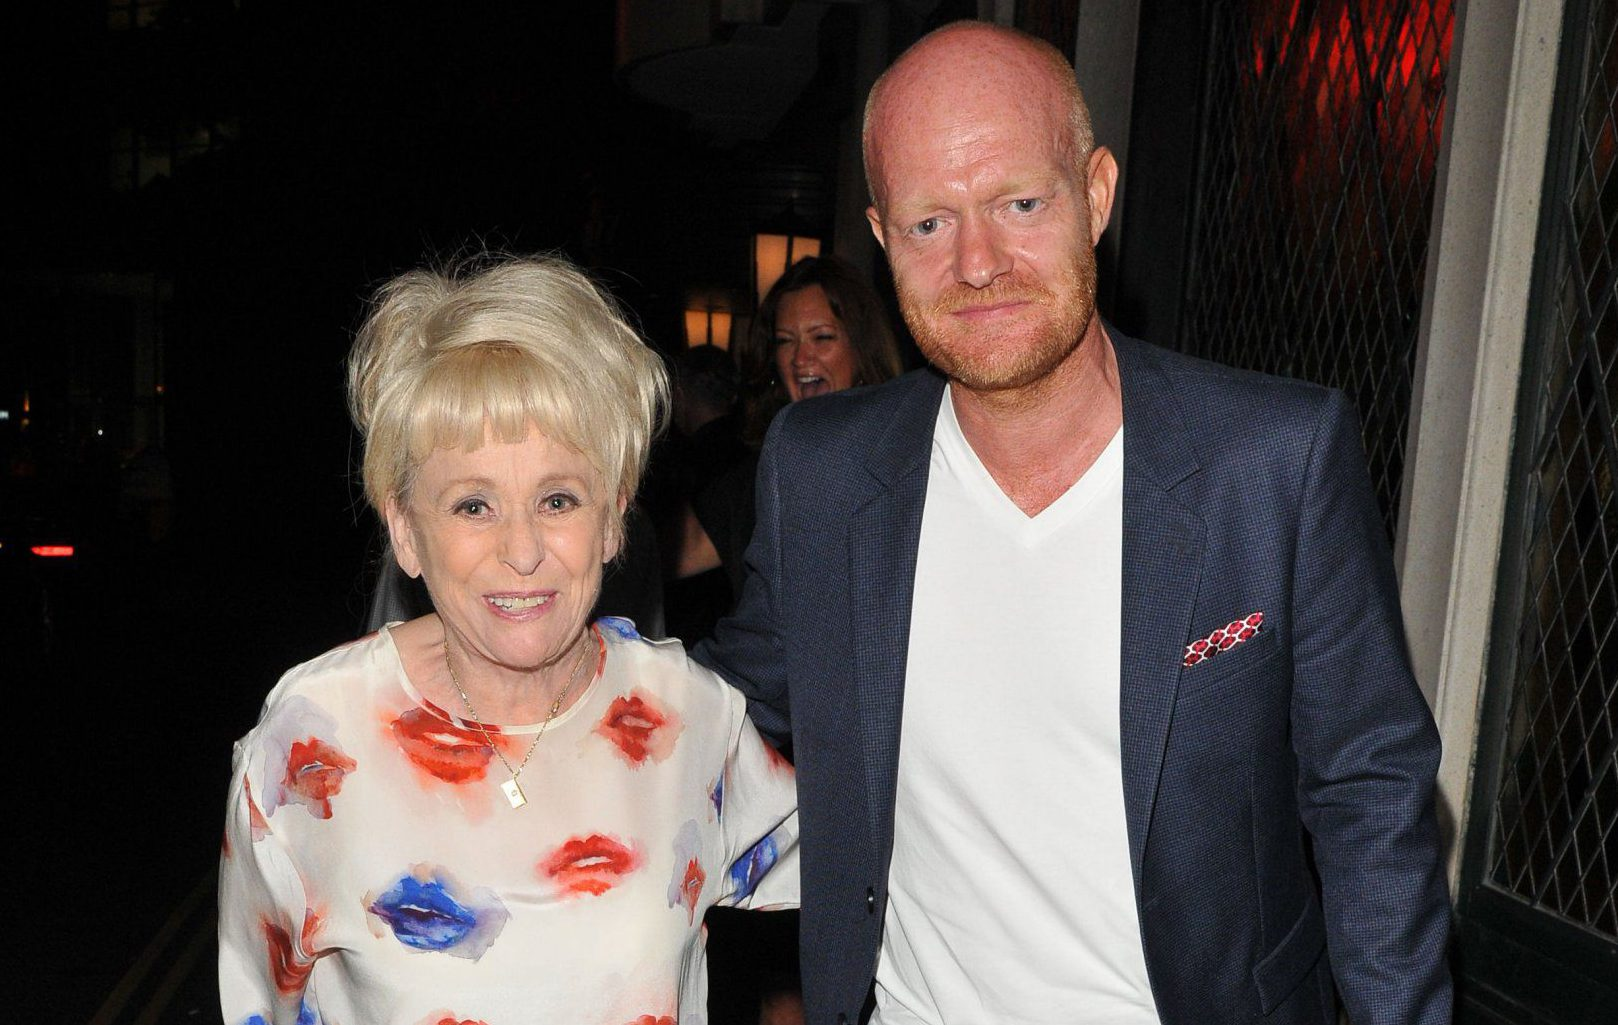 Mandatory Credit: Photo by Can Nguyen/REX/Shutterstock (5896971f) Barbara Windsor and Jake Wood Barbara Windsor and Jake Wood out and about, London, UK - 13 Sep 2016 The ex-Eastenders stars spotted leaving the Ivy restaurant.